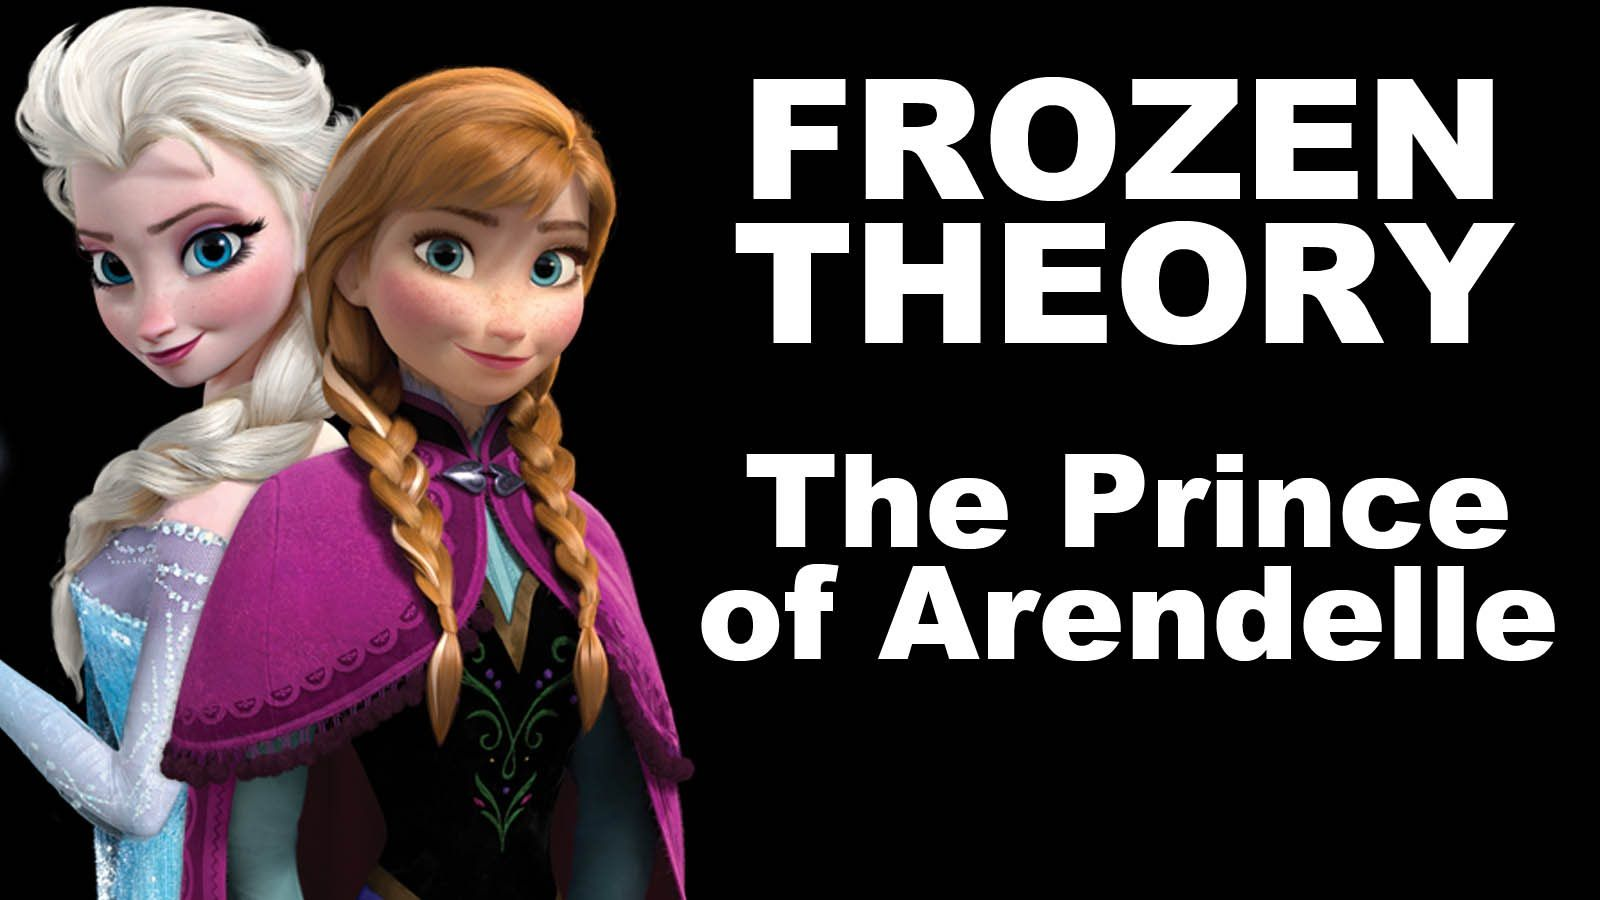 Frozen Theory The Prince Of Arendelle I Love The Super Carlin Brothers 3 They Are Awesome Frozen Theory Theories A Series Of Unfortunate Events